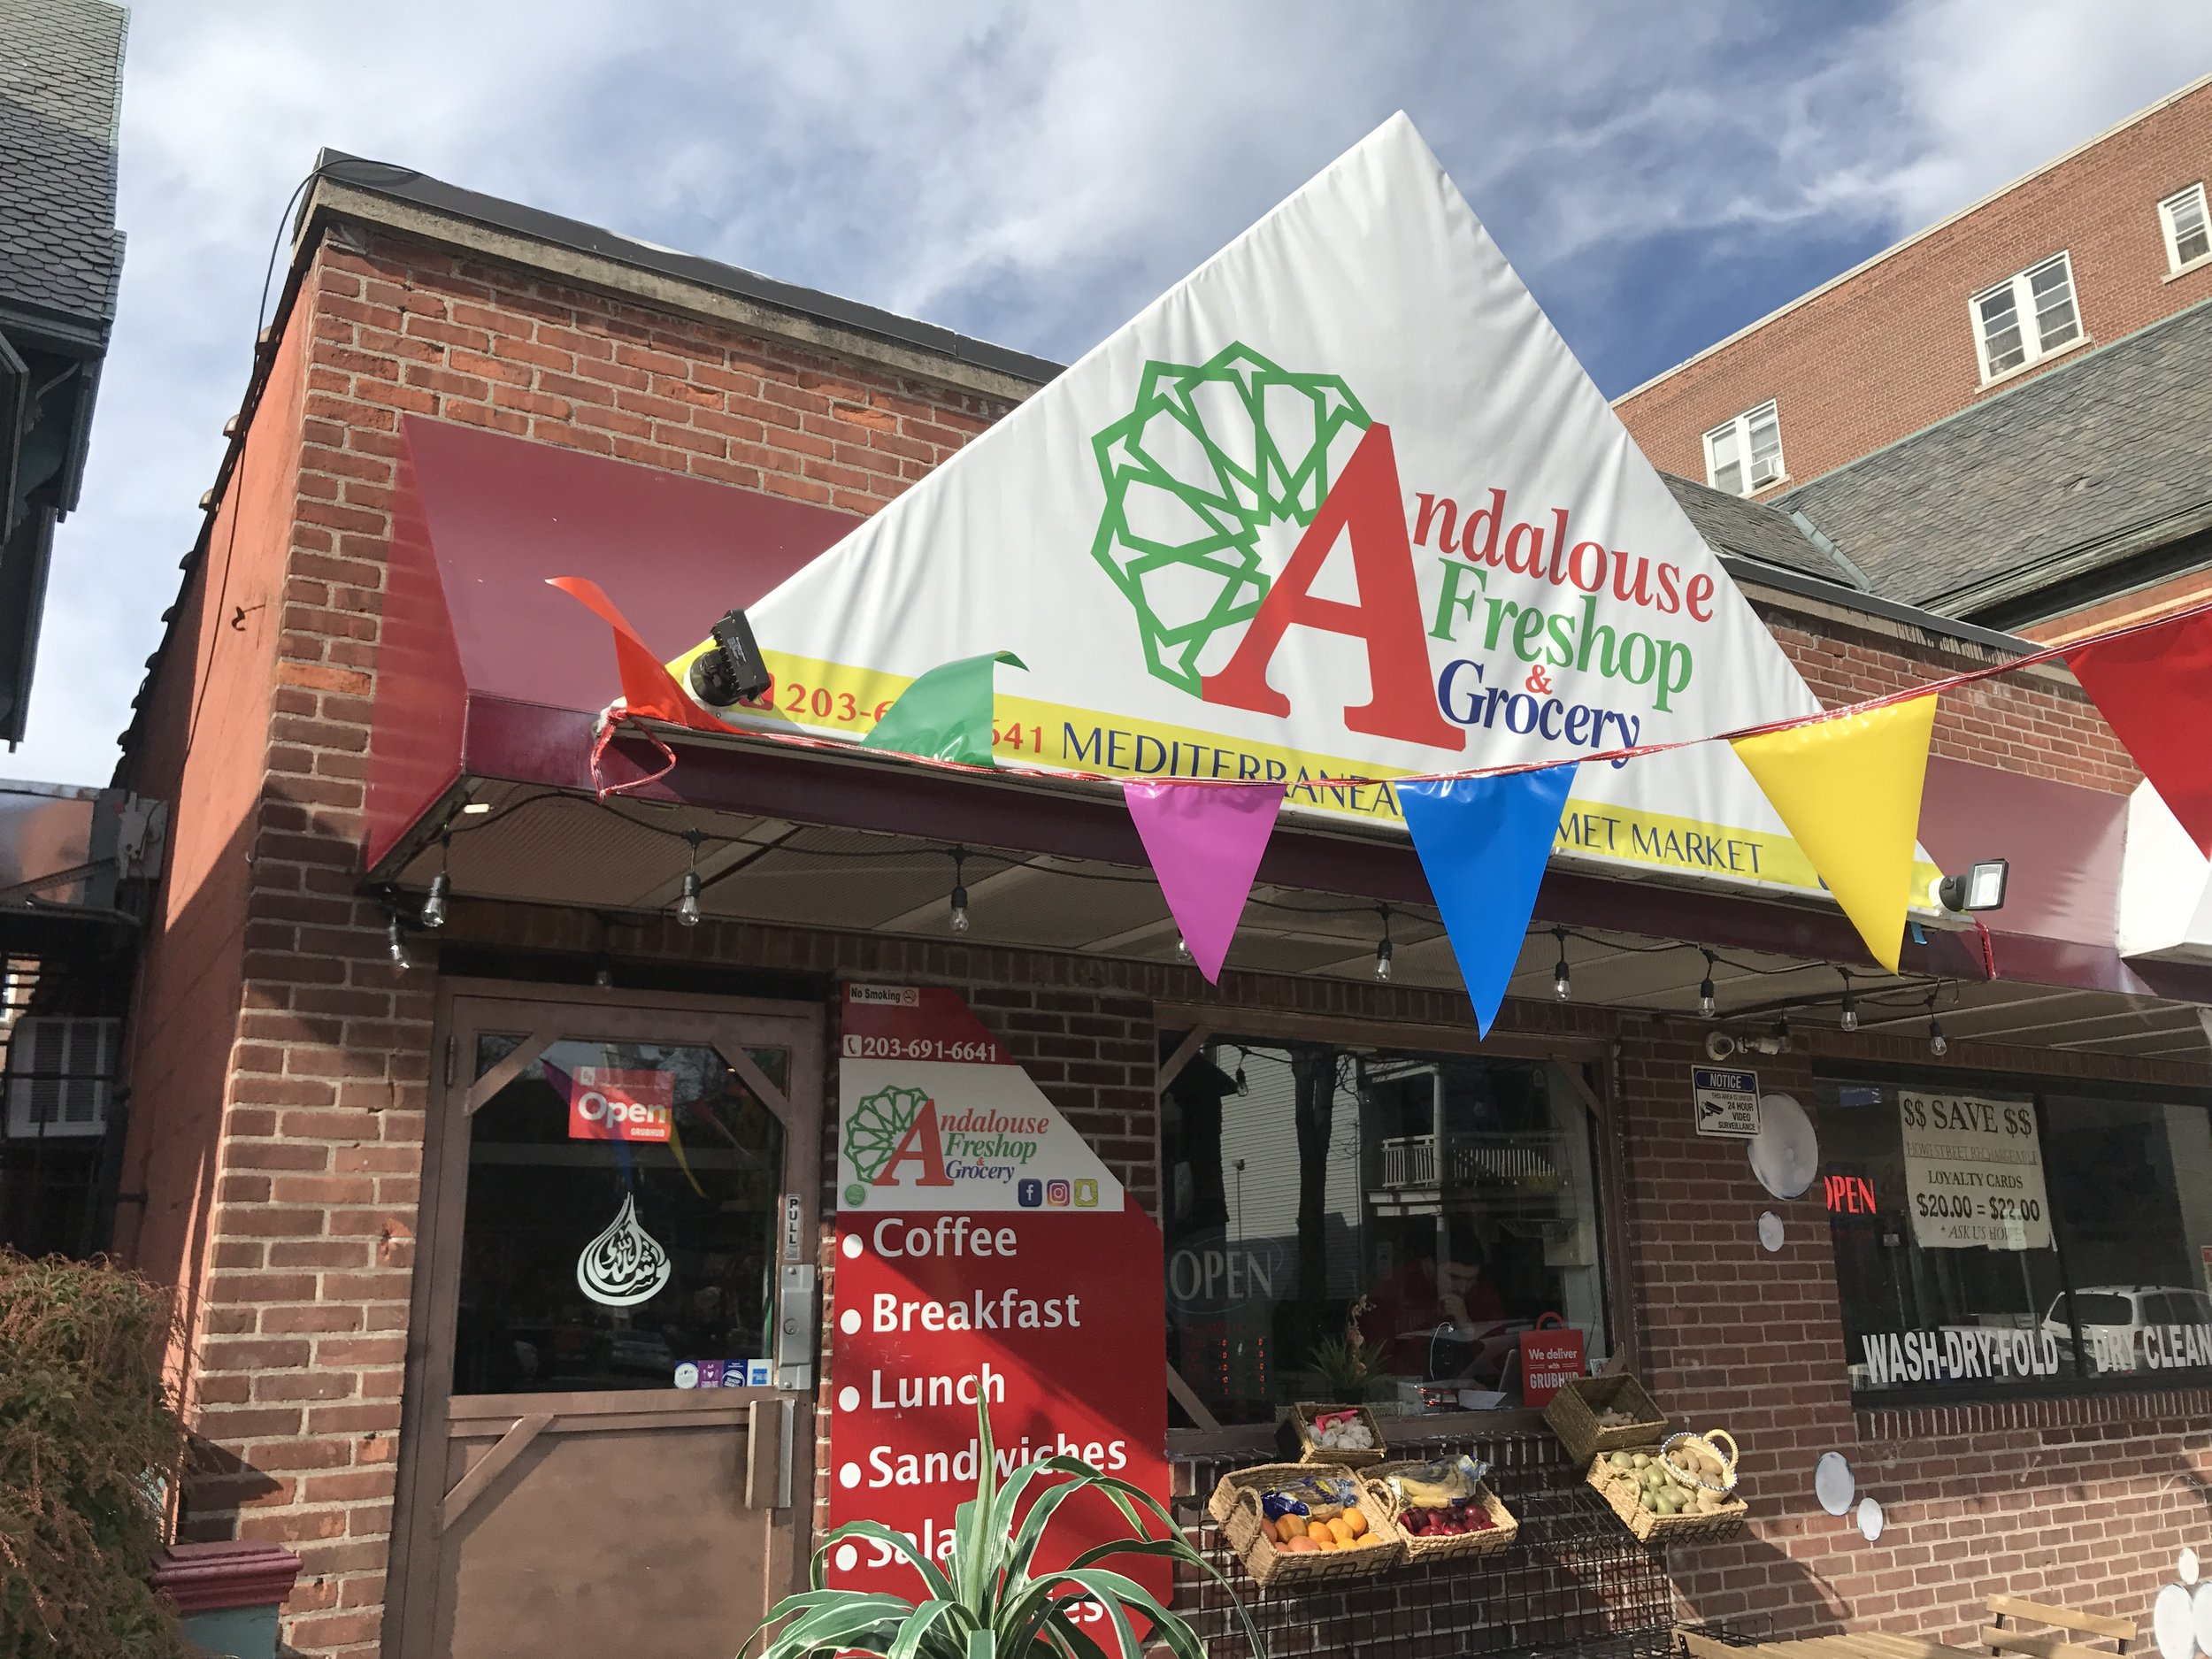 Andalouse Freshop Grocery 96 Howe (203) 691 6641